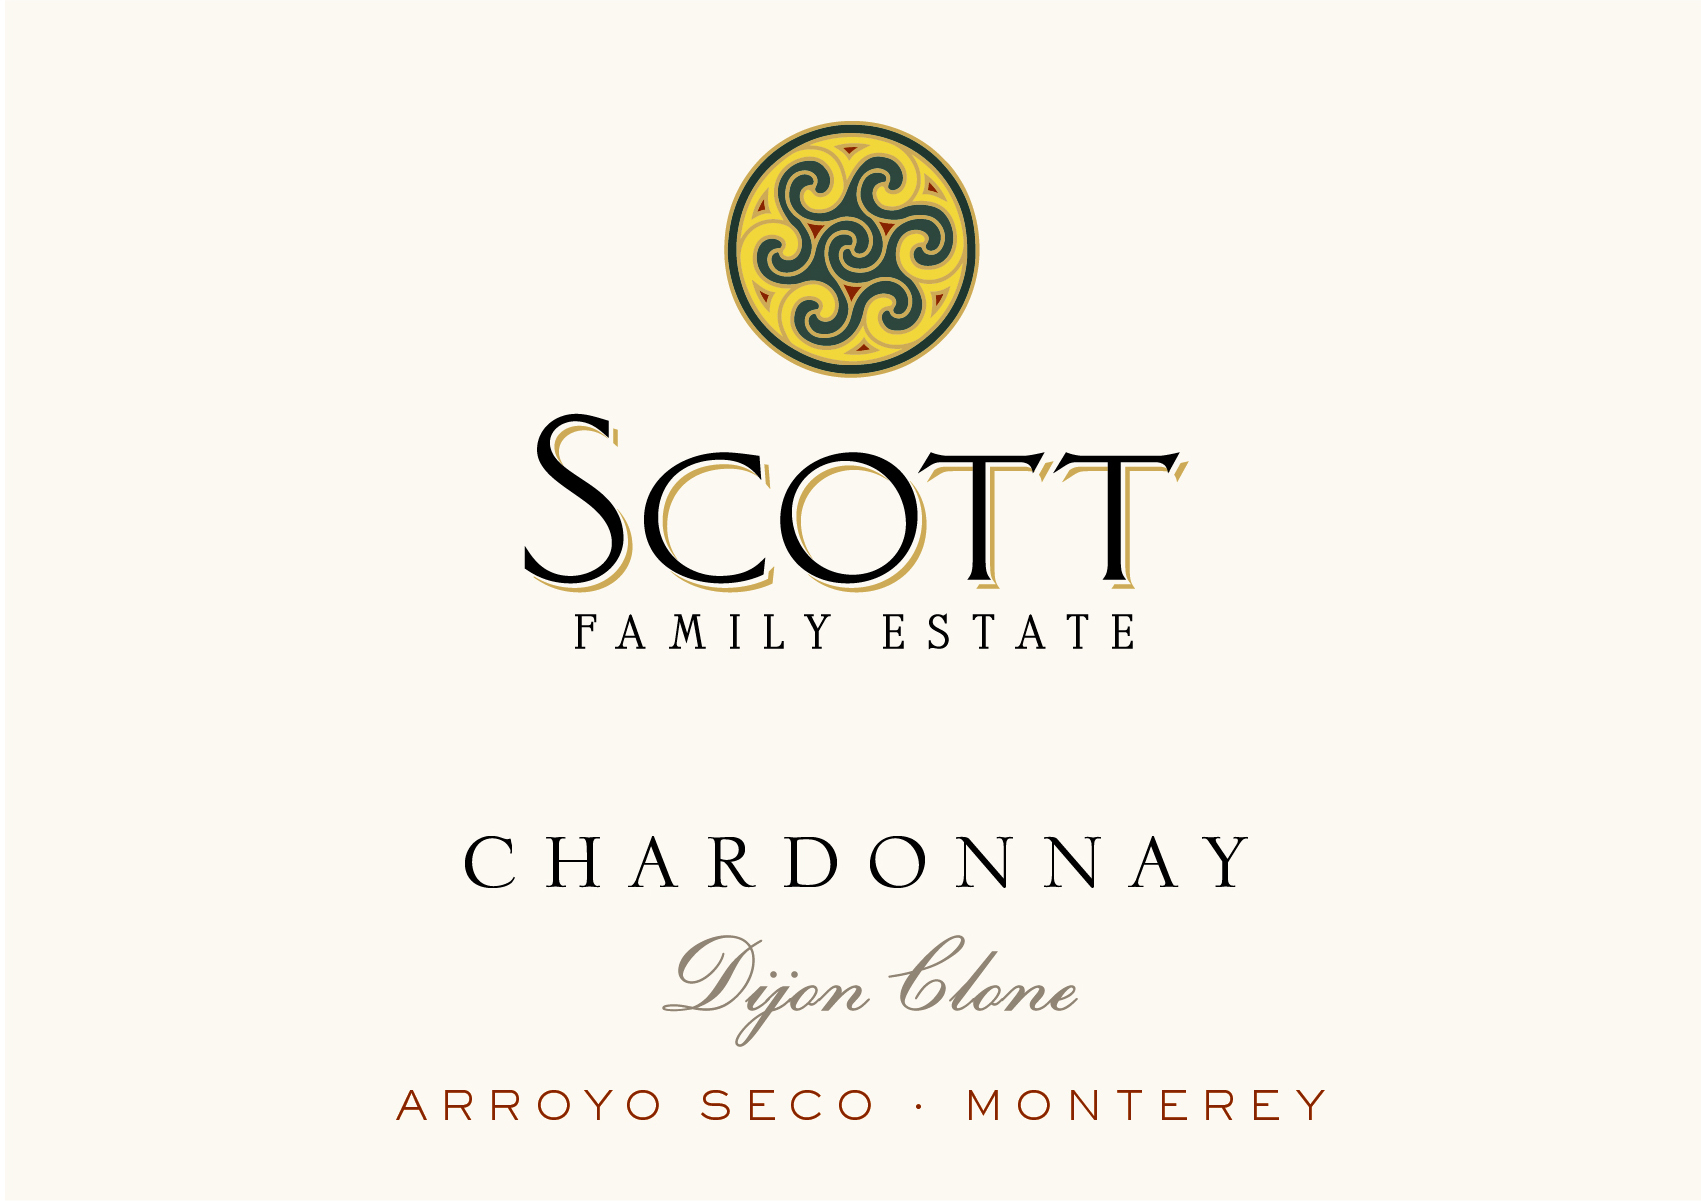 2016 Scott Family Estate Chardonnay Dijon Clone